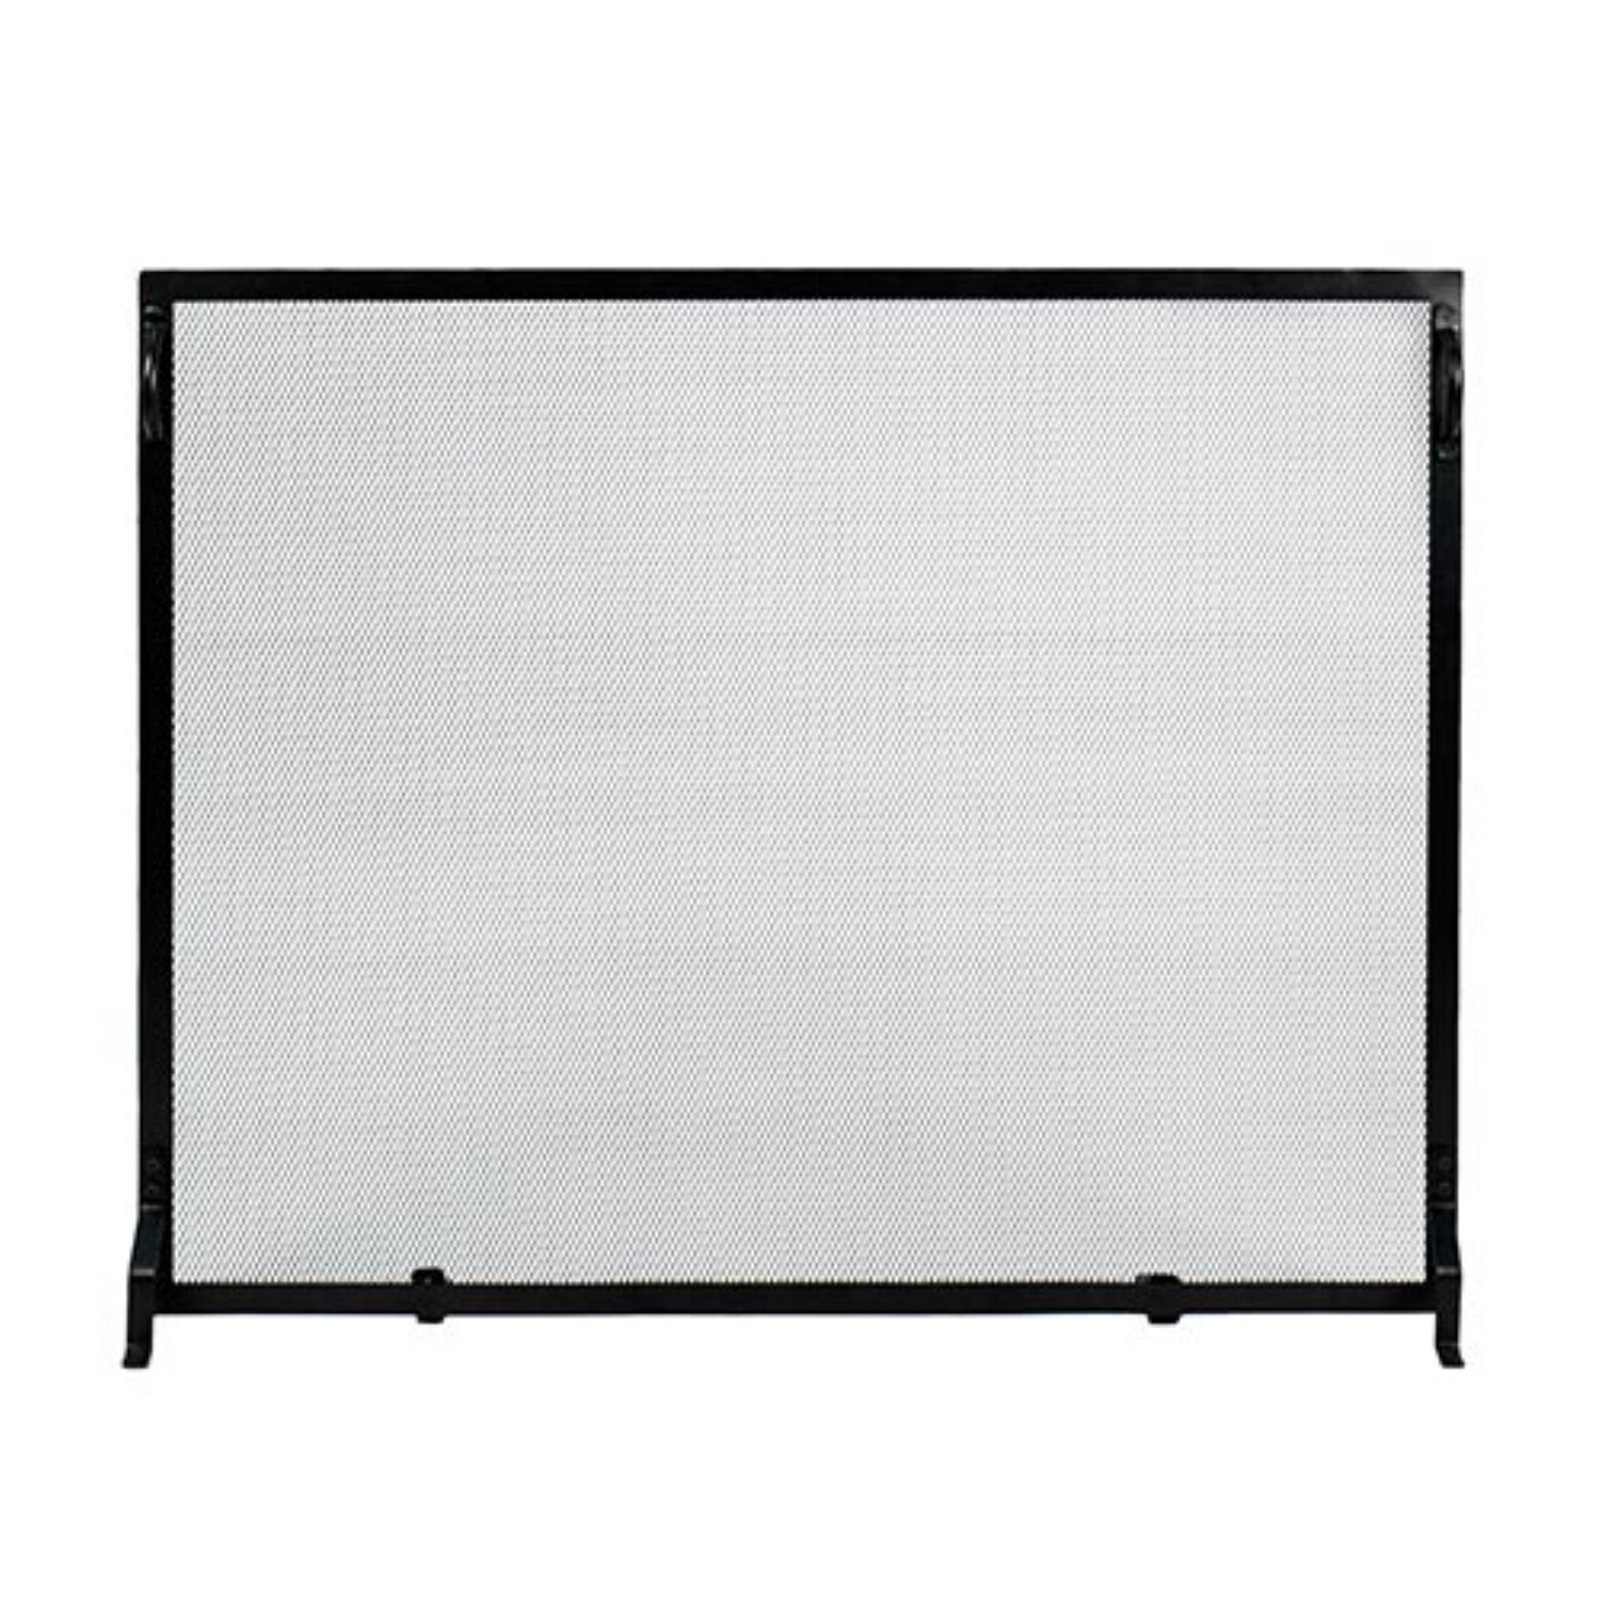 Minuteman International Plain By Design Fireplace Screen by Minuteman/Achla Designs